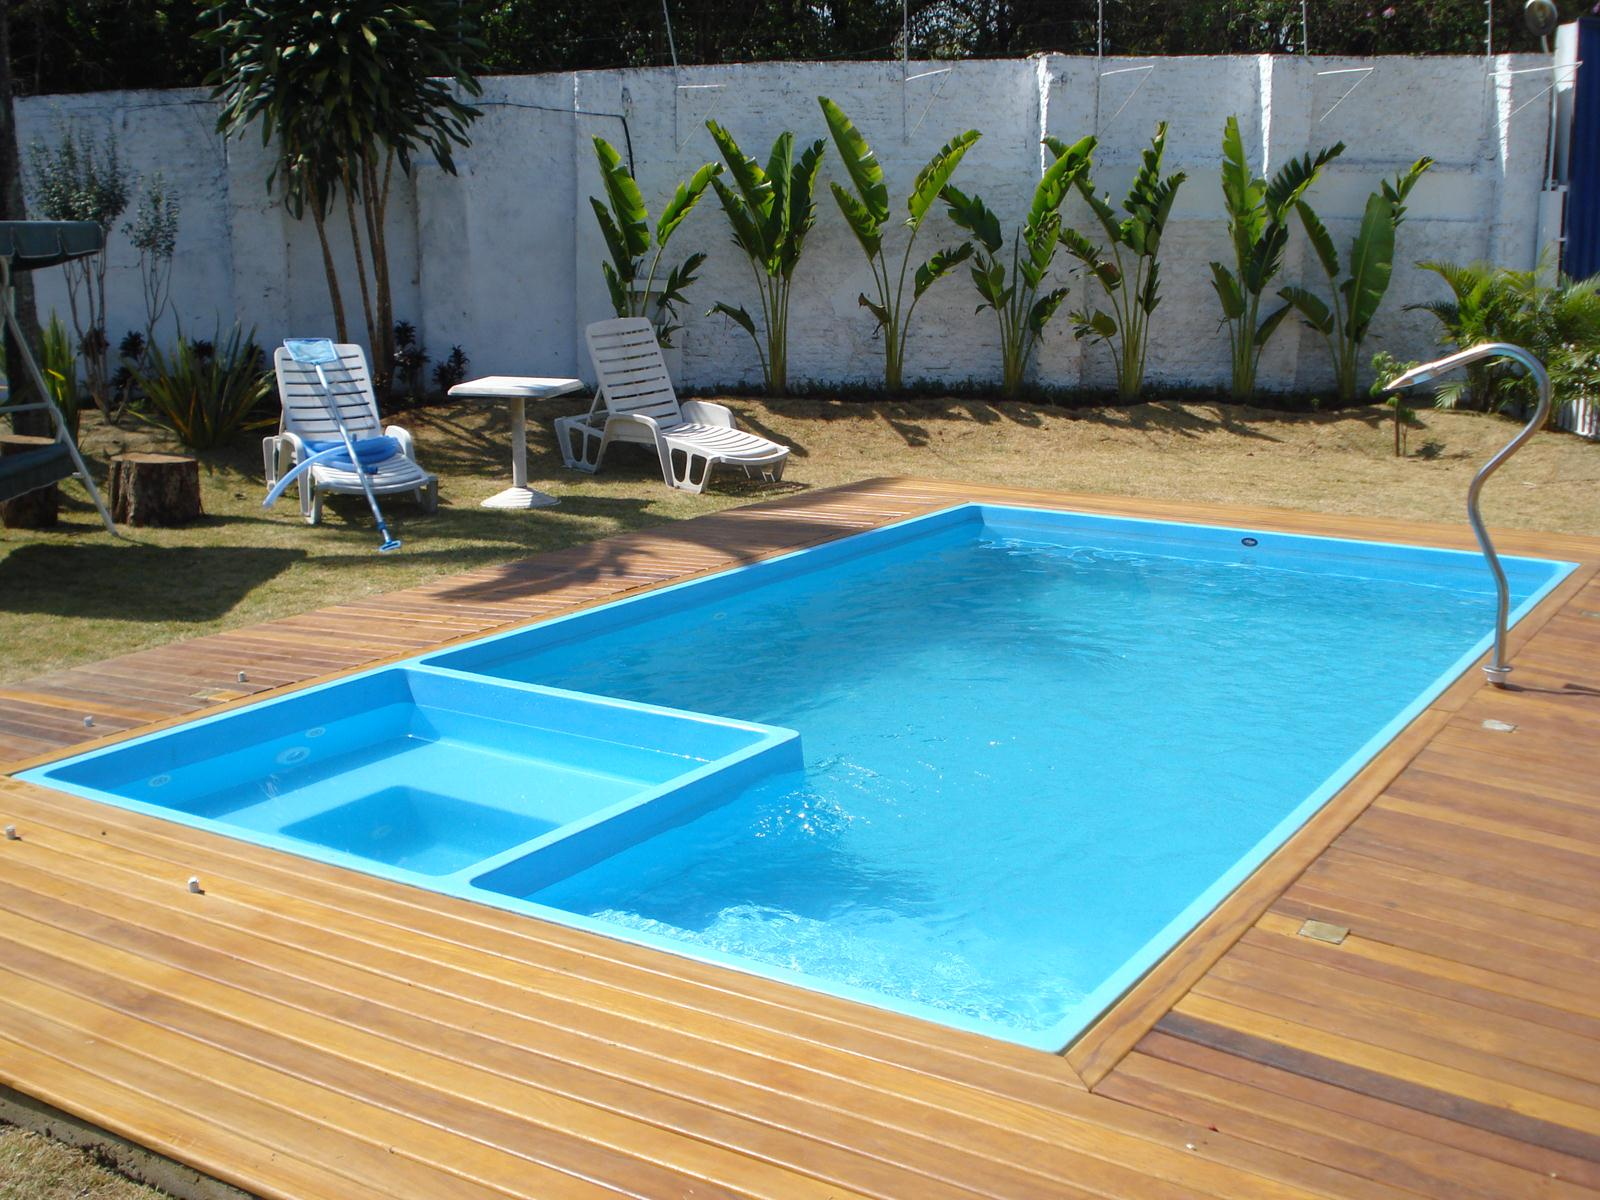 Fiber tudo para piscinas for Piscina infinita construccion